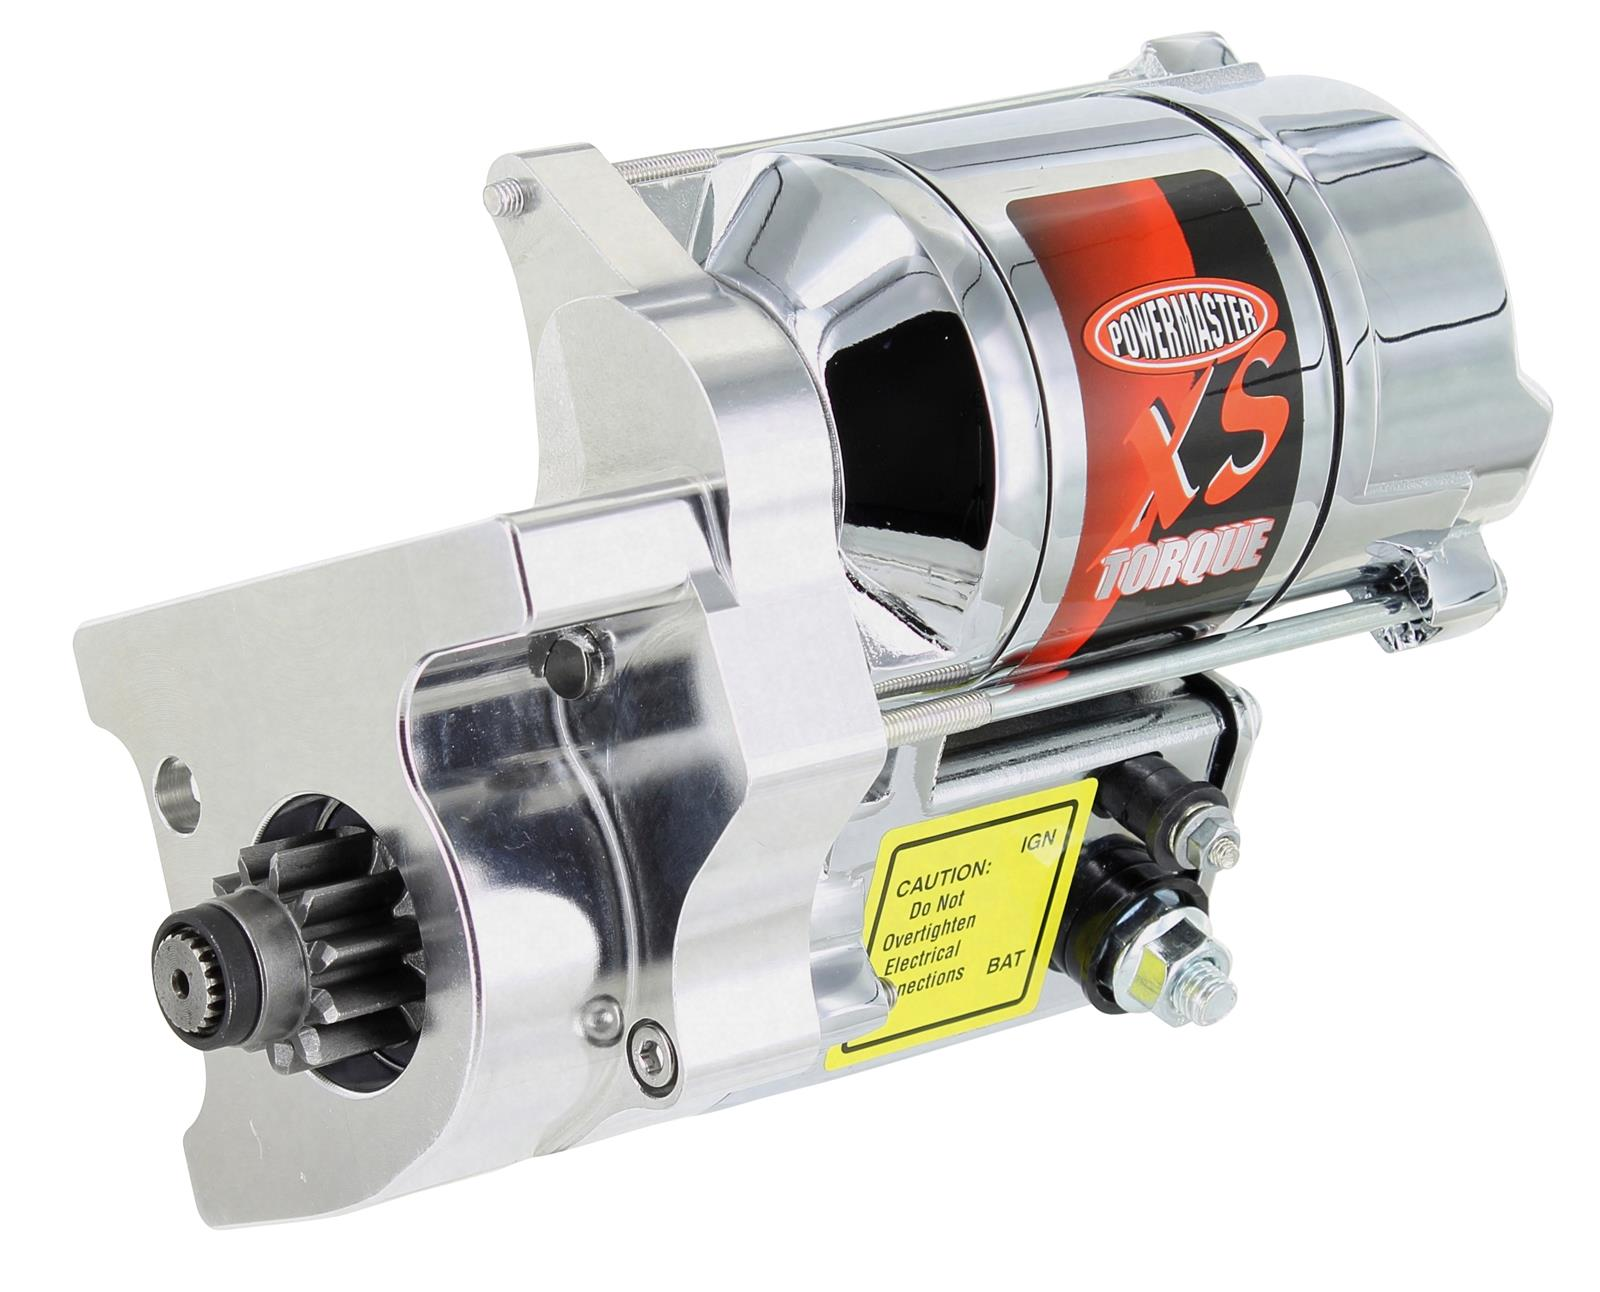 Powermaster Xs Torque Starter Wiring Solutions Ford 460 Mini Diagram Starters 19502 Free On Orders Over